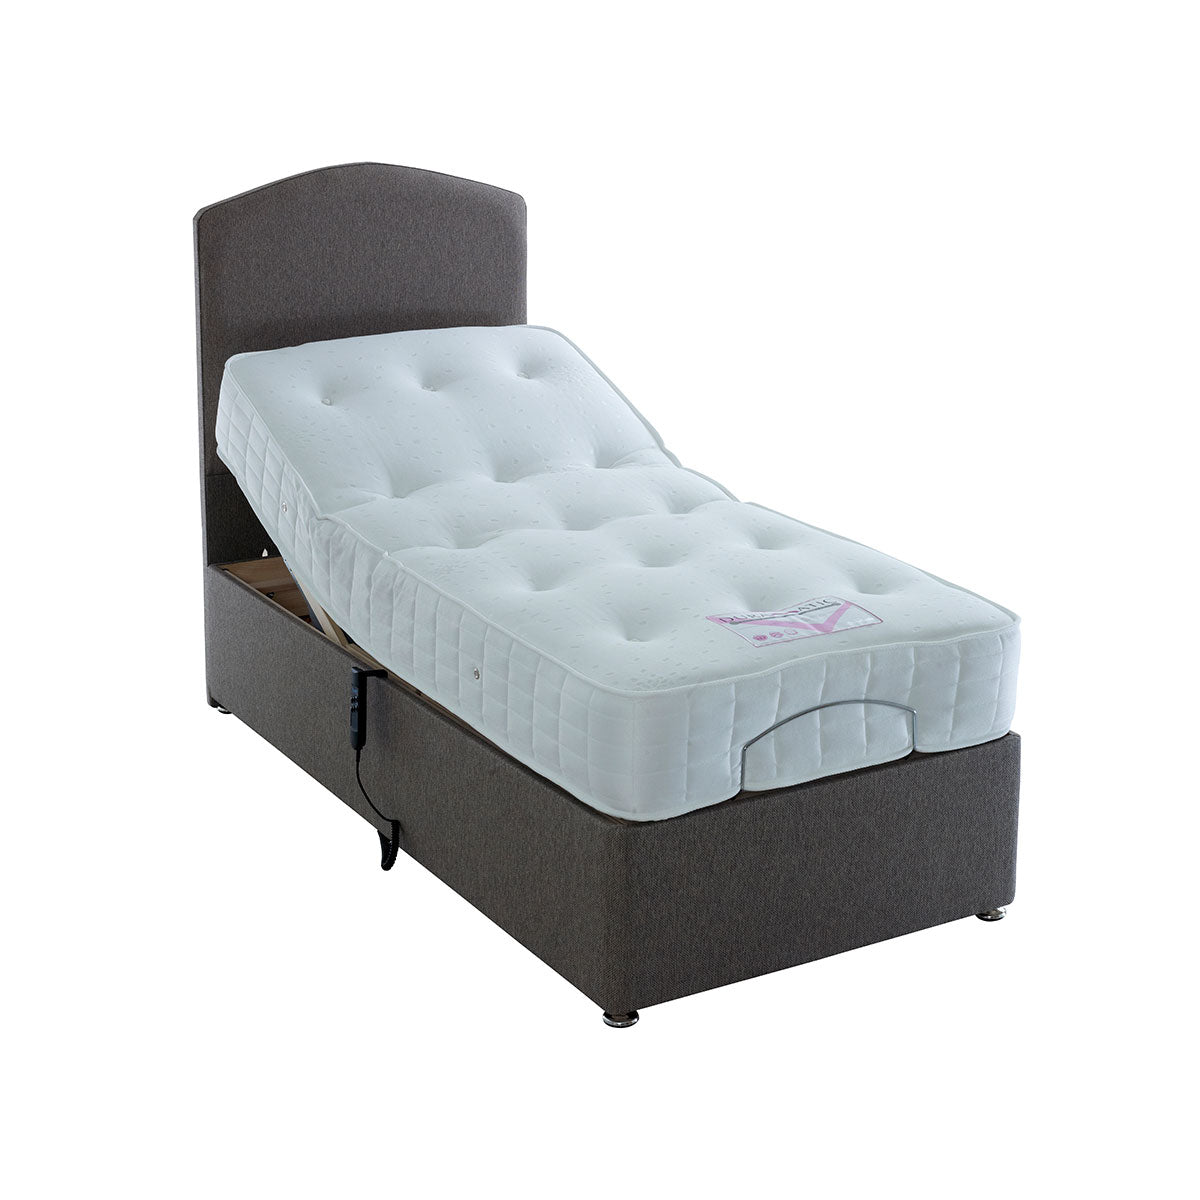 Duramatic 1000 Pocket Sprung Electric Divan Bed (Mattress = Medium Firm)